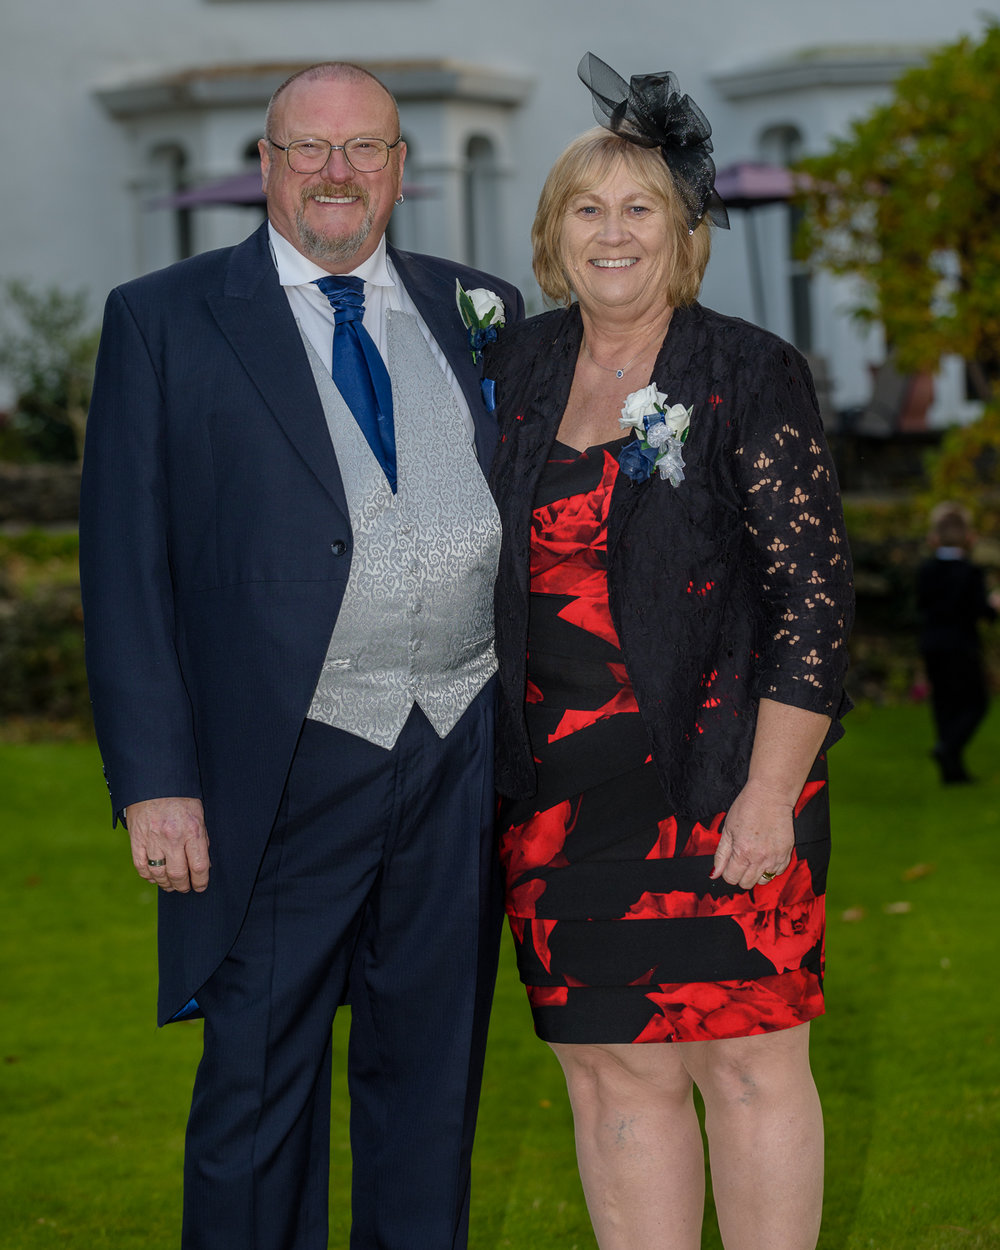 Mr & Mrs Wise-260.jpg